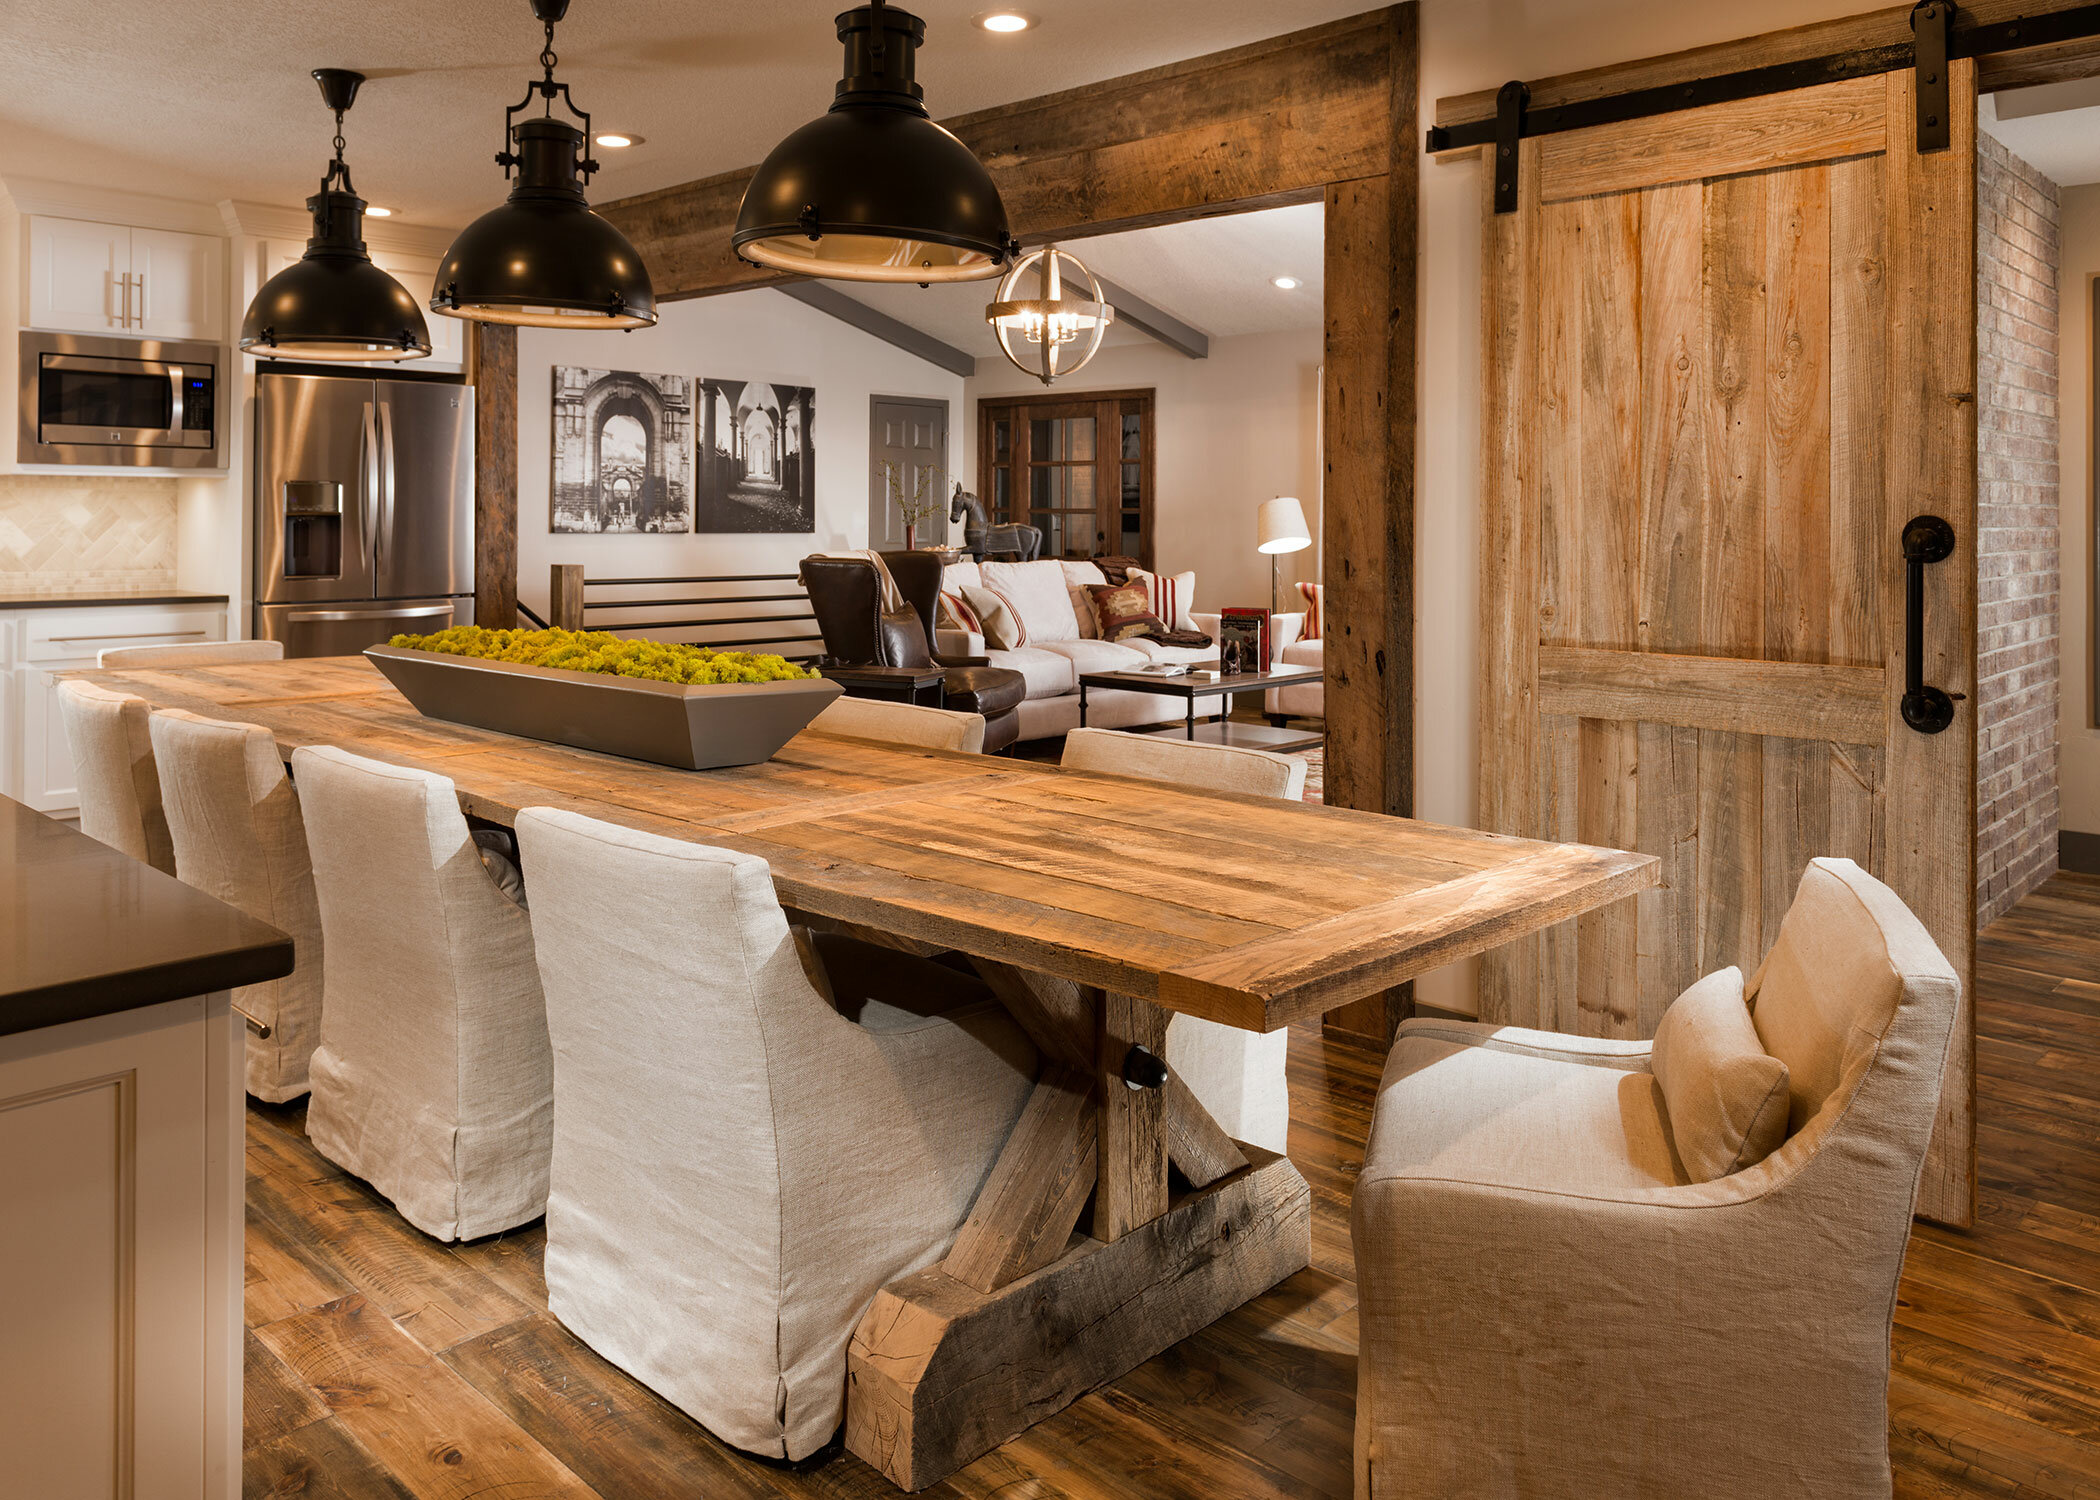 11 Times a Barn Door Made the Space  Wayfair